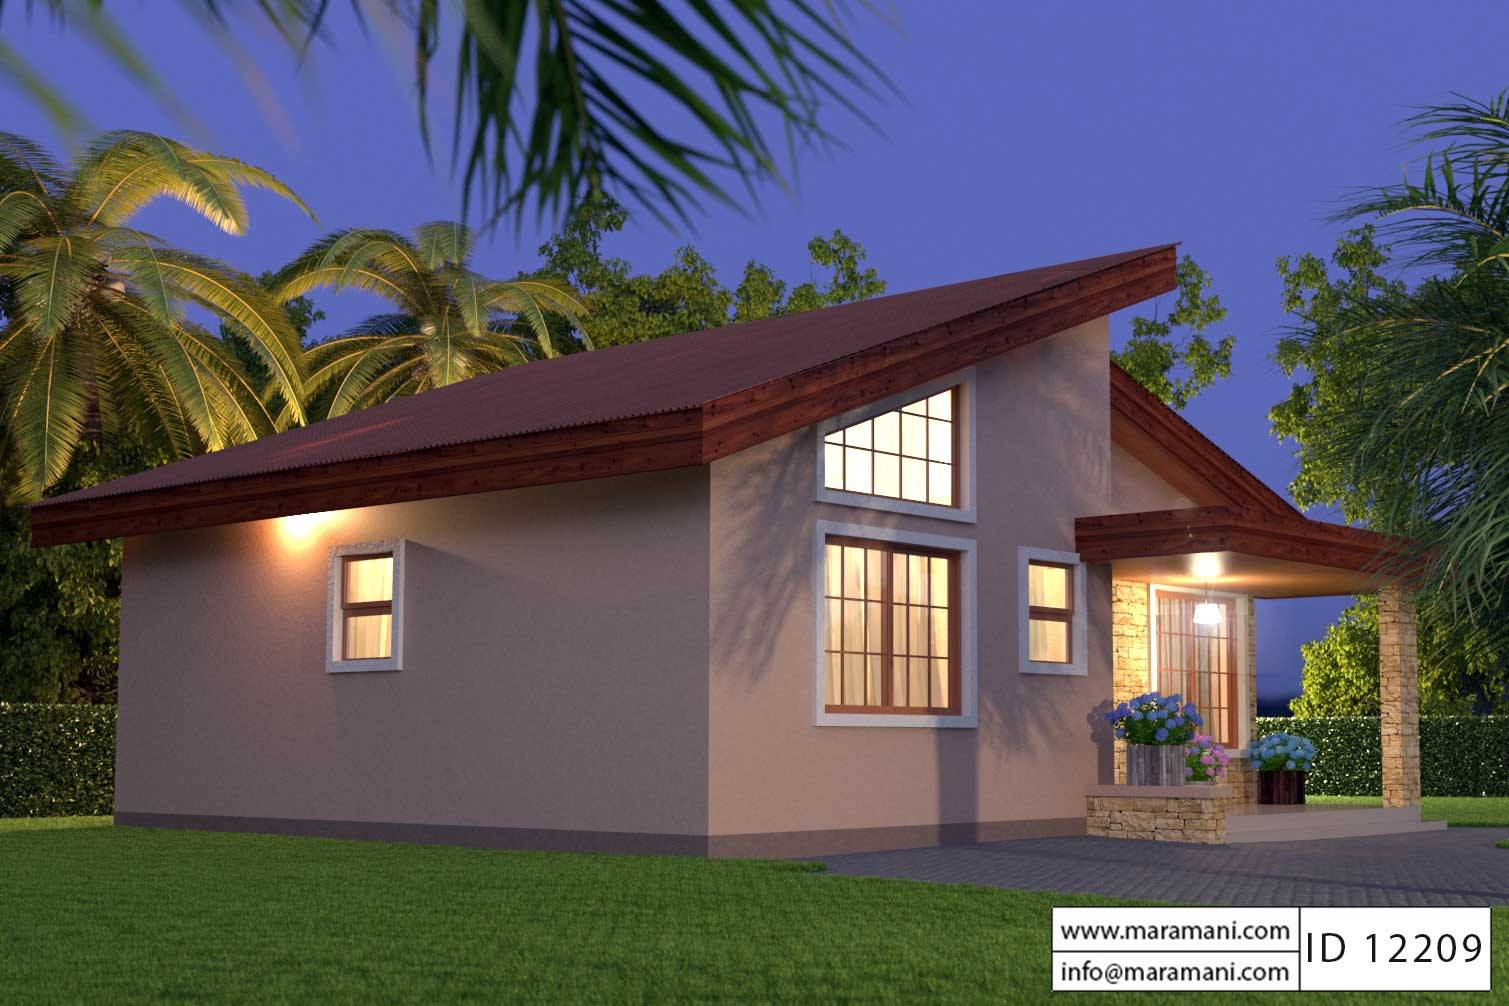 Two bedroom house id 12209 for Two bedroom house